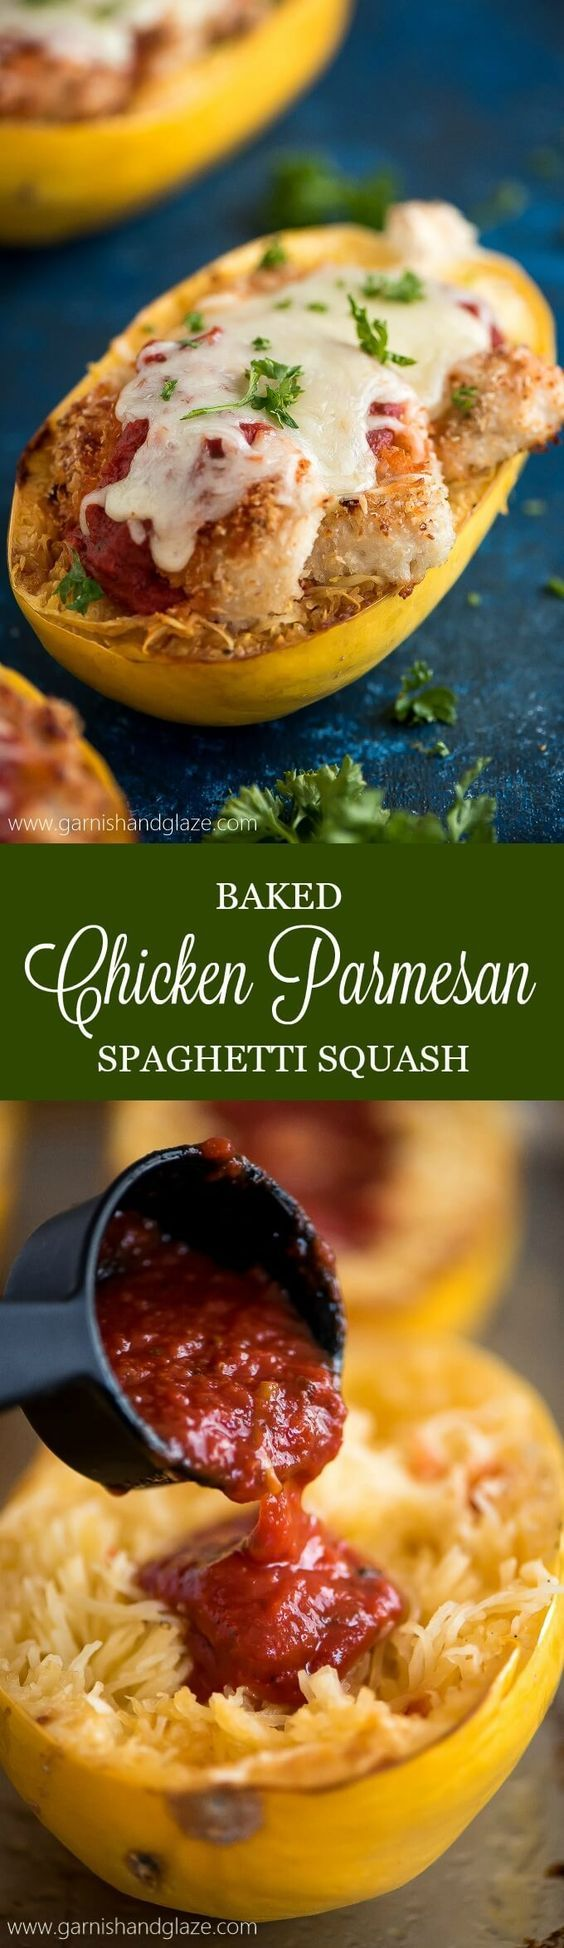 Make a smart swap and cook up some Baked Chicken Parmesan Spaghetti Squash for a healthier dinner with the same great taste and crispy texture. Repin for a chance to see a similar meal in your freezer aisle @smartmade0201 @AOL_Lifestyle #ad #SmartMade #InspiredByYou